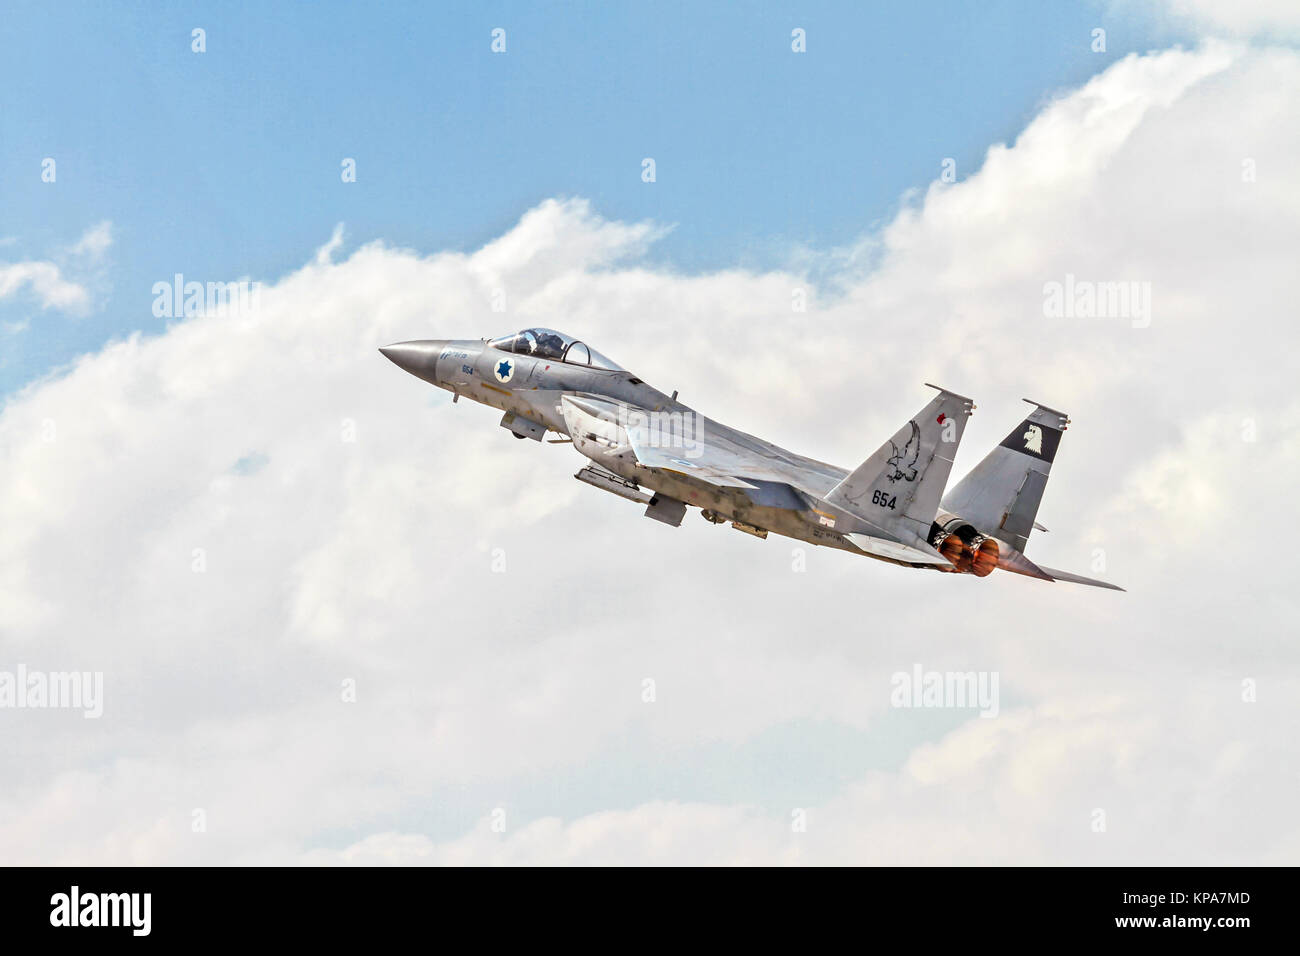 """Israeli Air Force (IAF) McDonnell Douglas F-15A in flight.  Photographed at the  """"Blue-Flag"""" 2017, an international Stock Photo"""